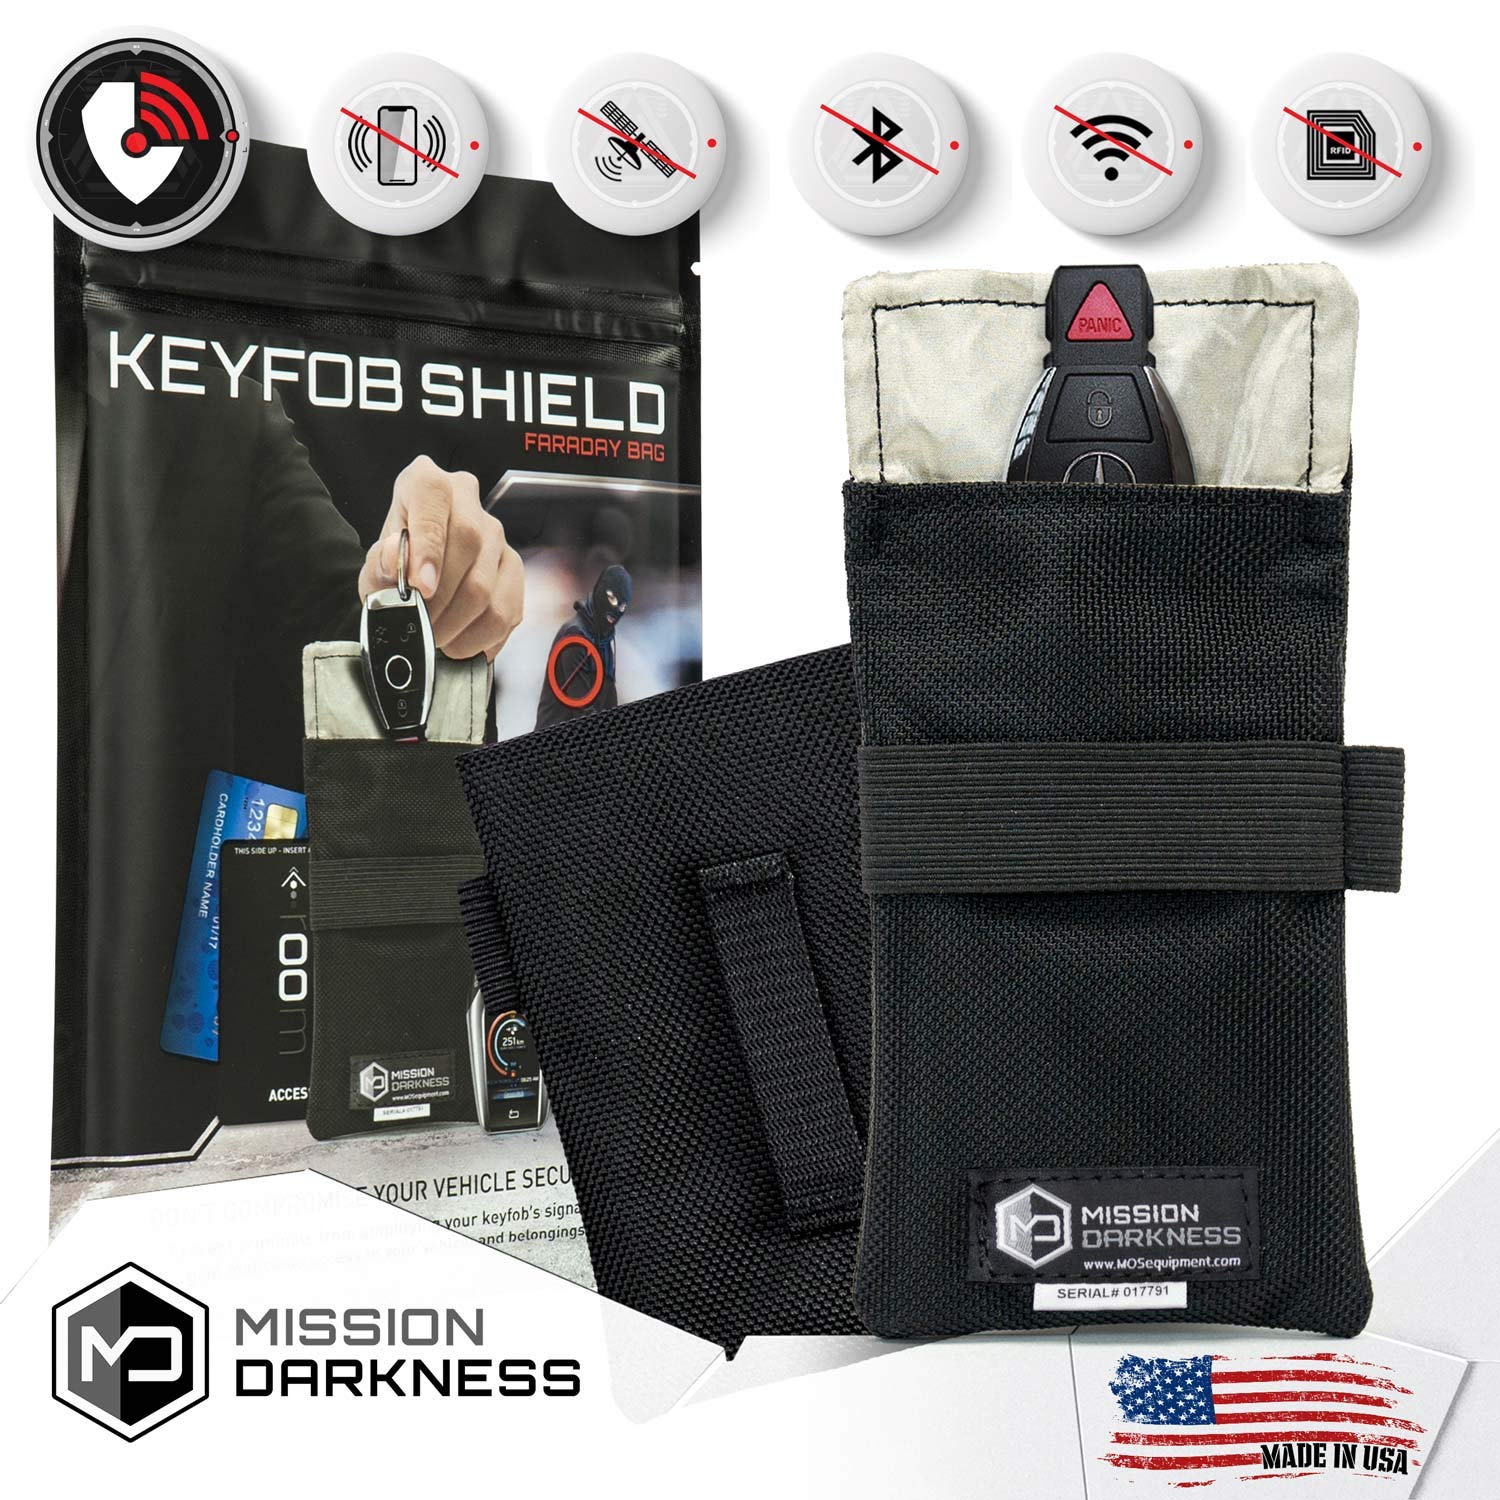 Mission Darkness Faraday Bag for Keyfobs - 5th Gen Shielding for ...